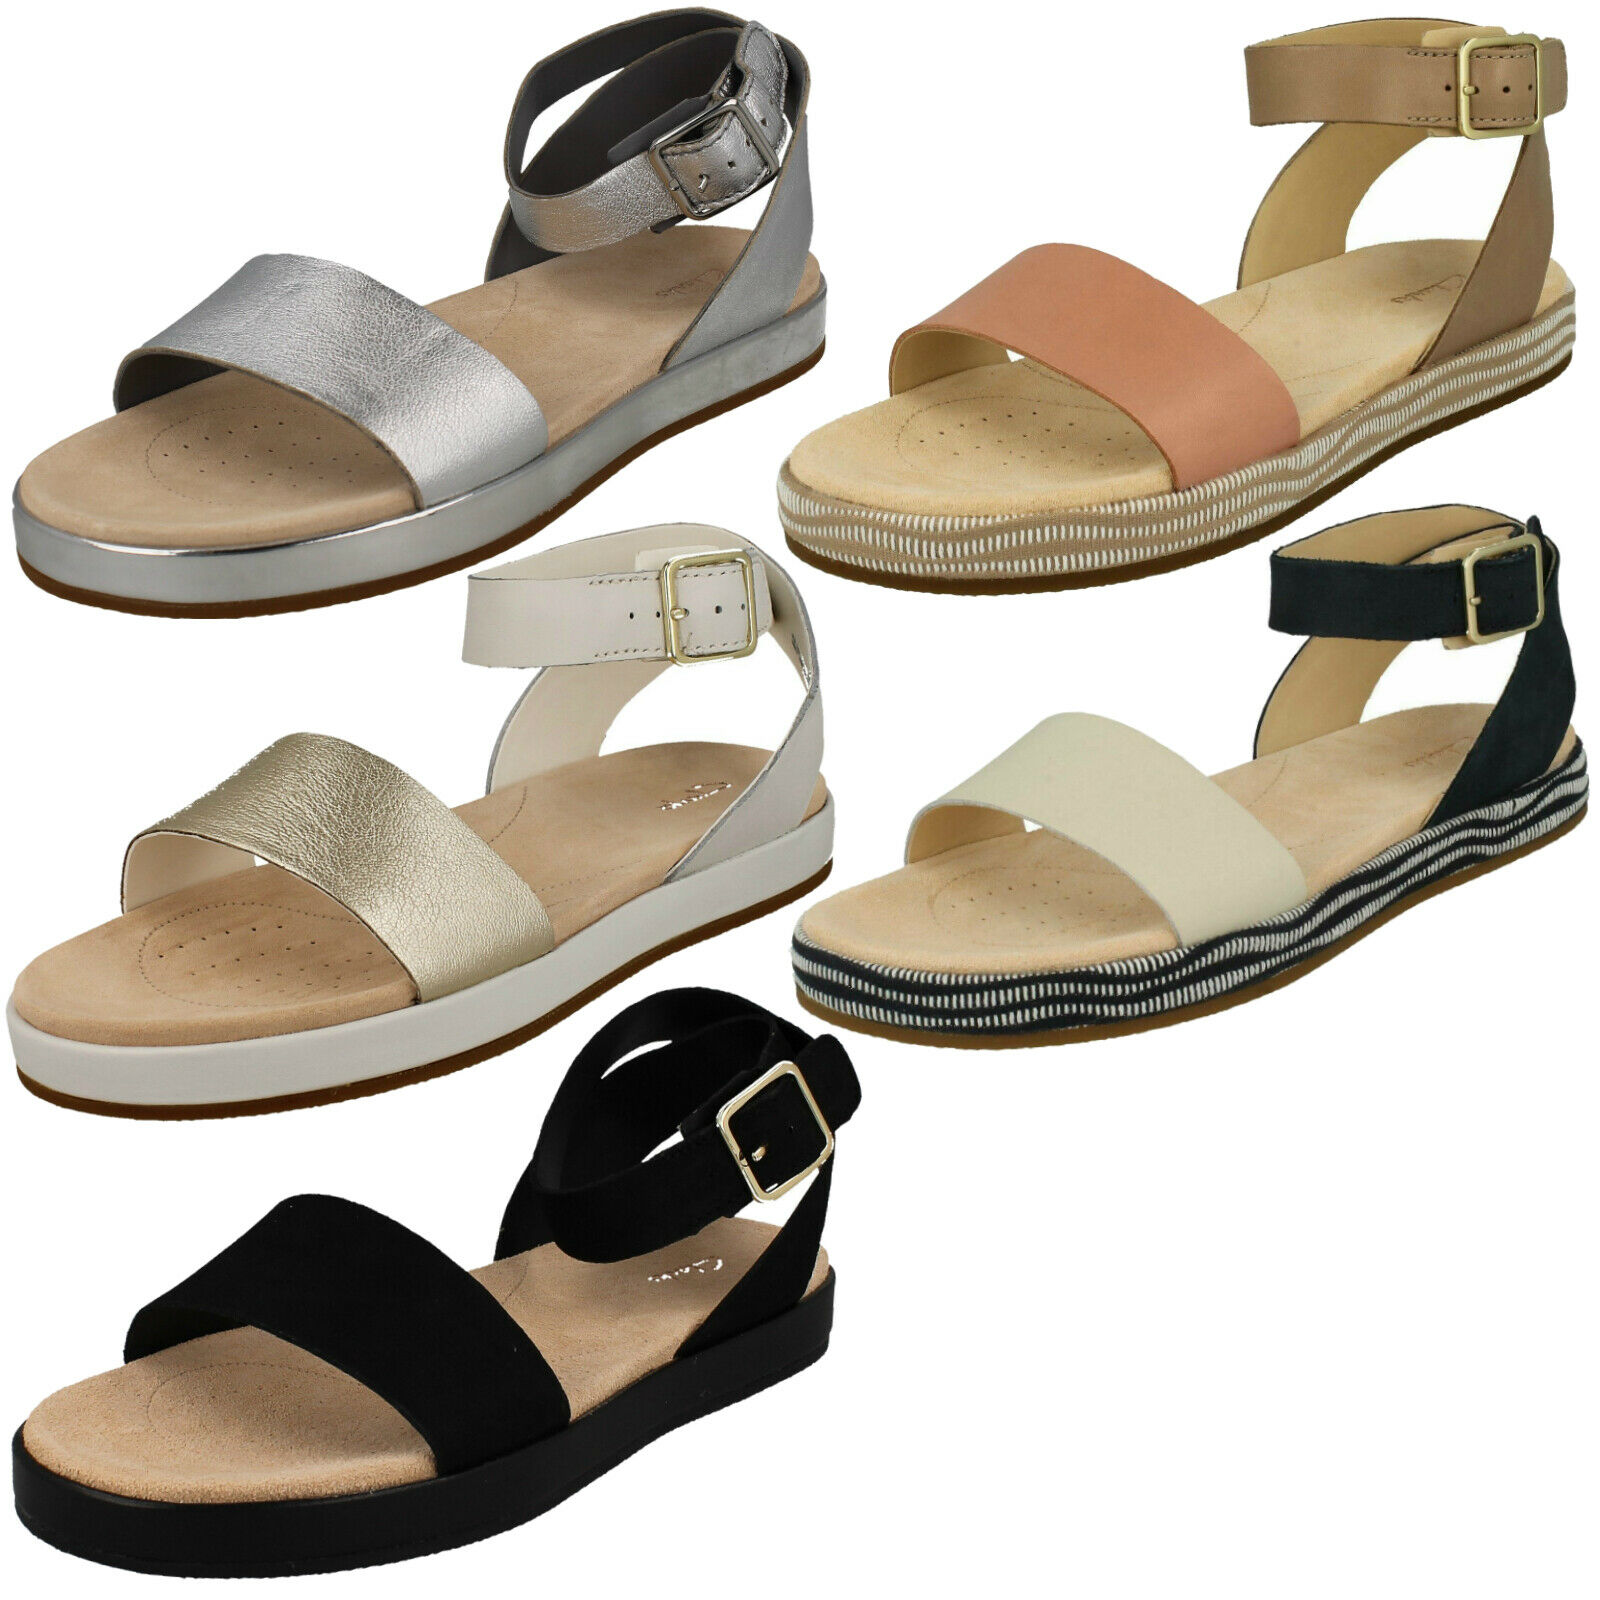 LADIES CLARKS BOTANIC IVY LEATHER ANKLE STRAP FLAT SUMMER CASUAL SANDALS Größe